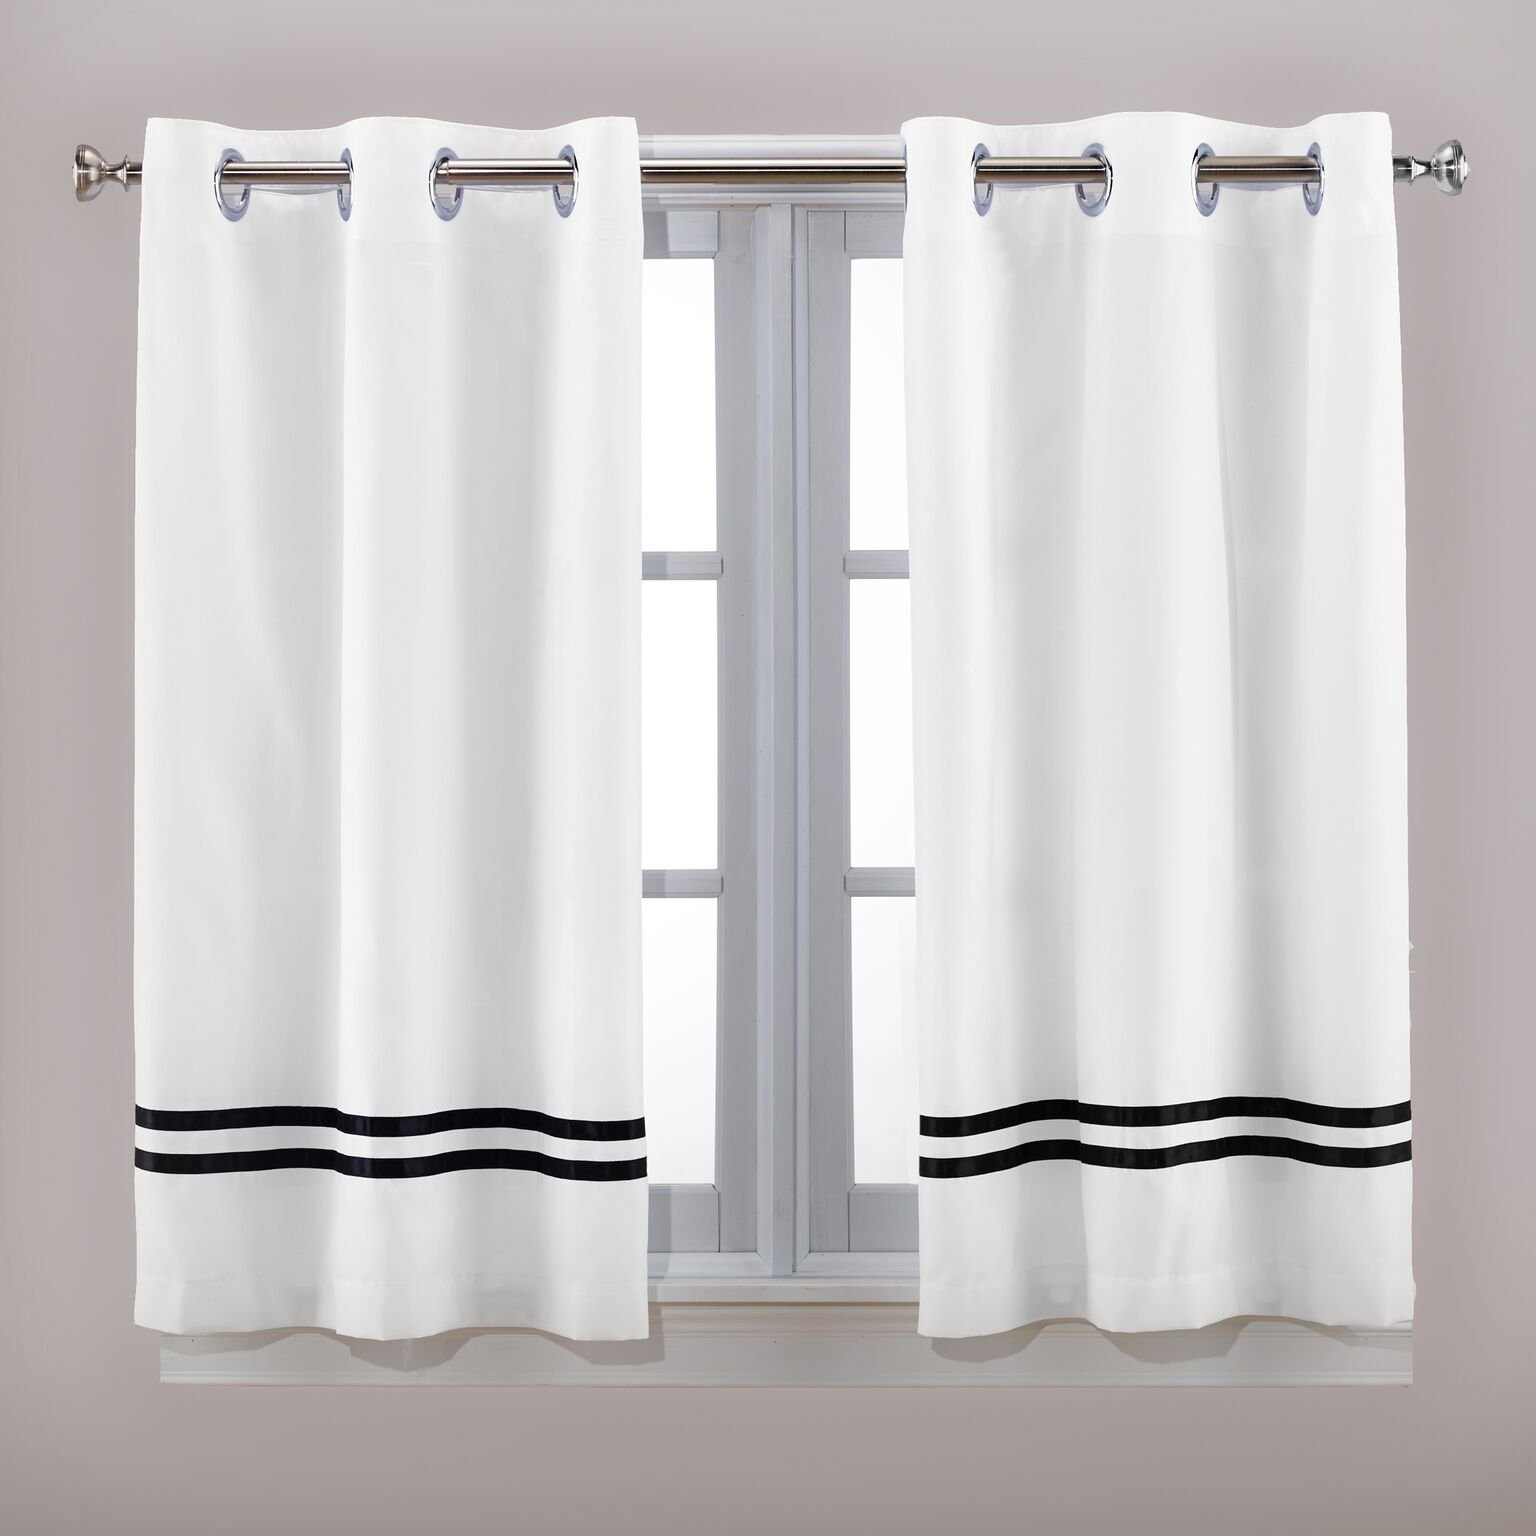 Hookless Special Size Shower RBH40WP962 Tuxedo Polyester with Flex-On Rings Window Panel Curtain, White with Black Stripe